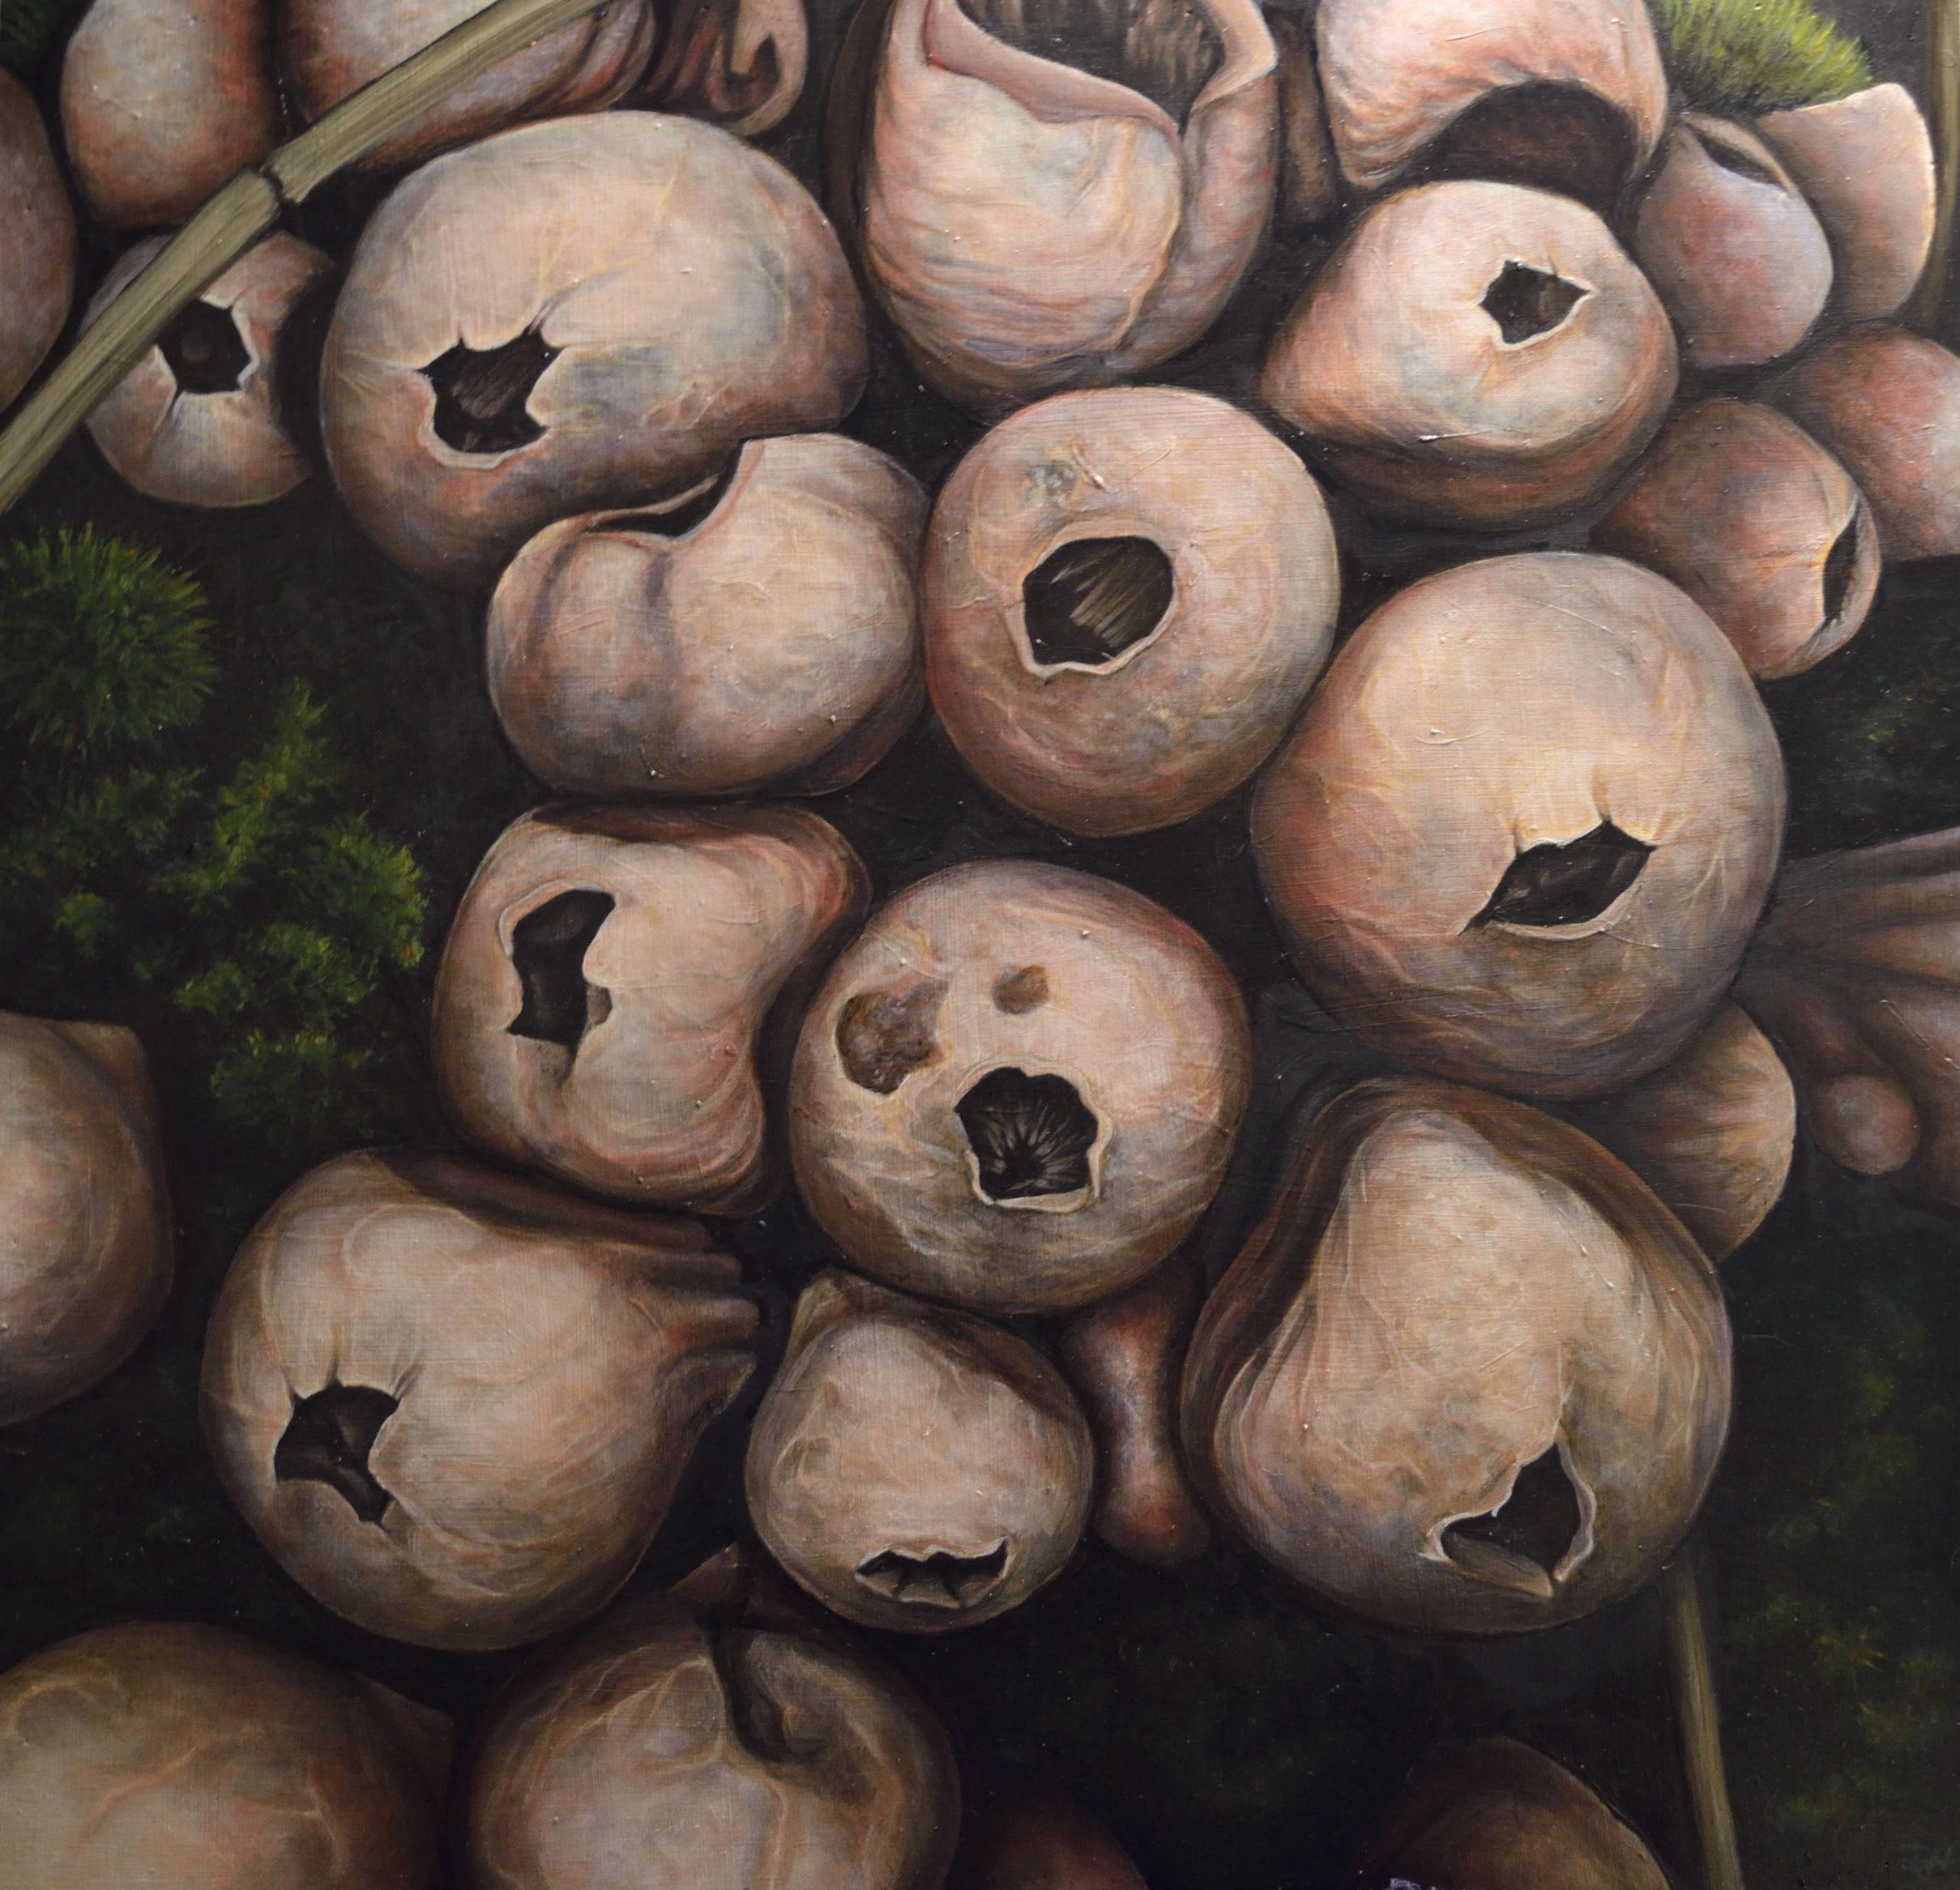 """Puff Ball Mushrooms"" by Devan Horton, 24 x 24in, oil on panel (2017), $800 